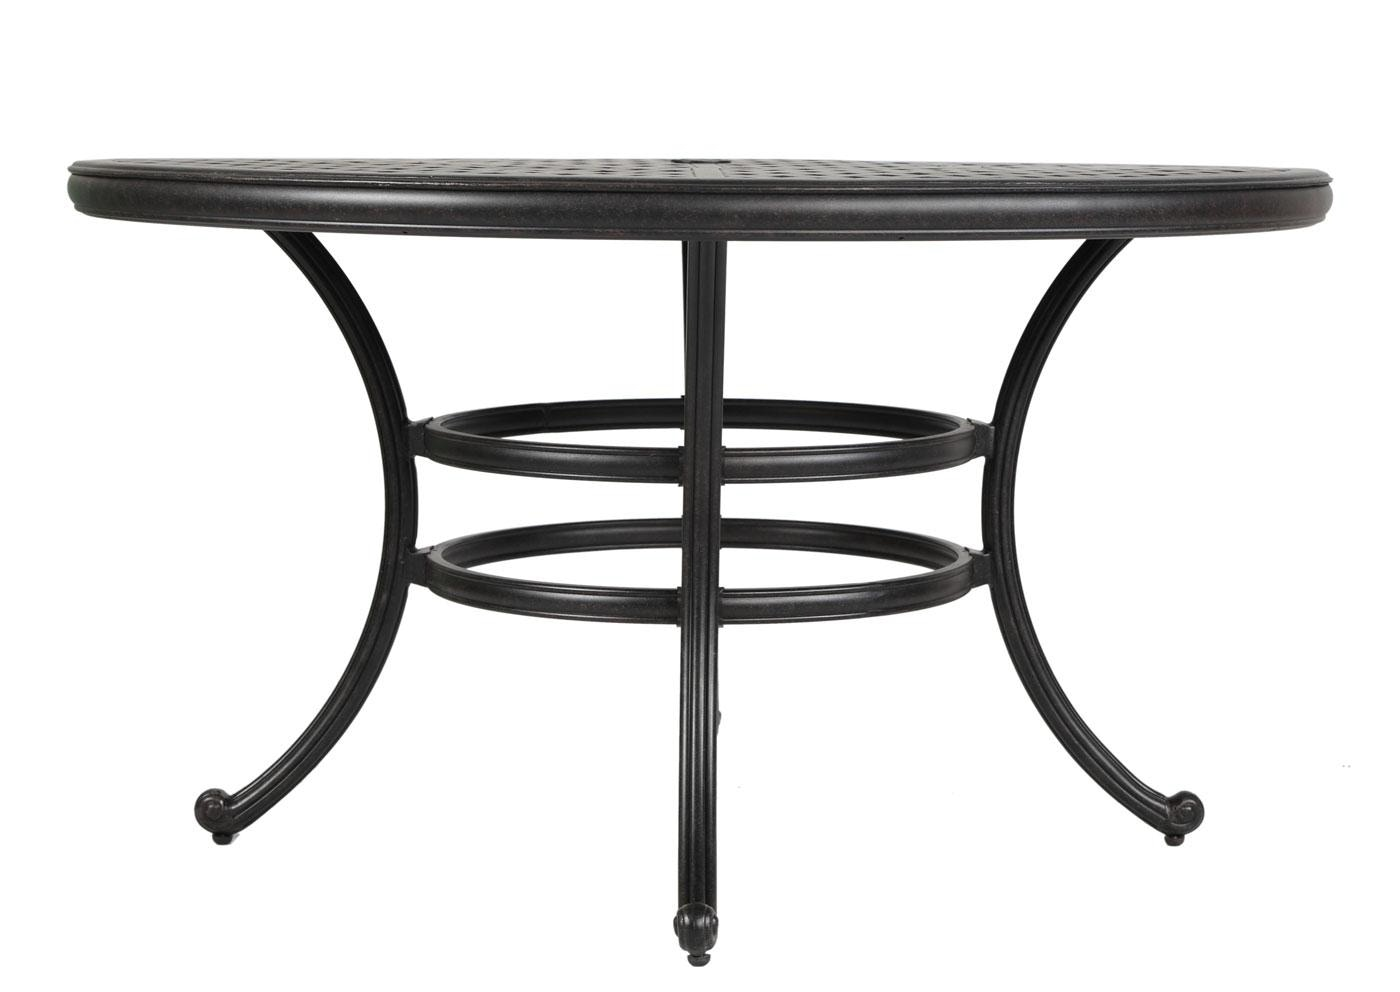 outdoor round dining table. Gathercraft Castlerock Round Dining Table 054401 Outdoor O